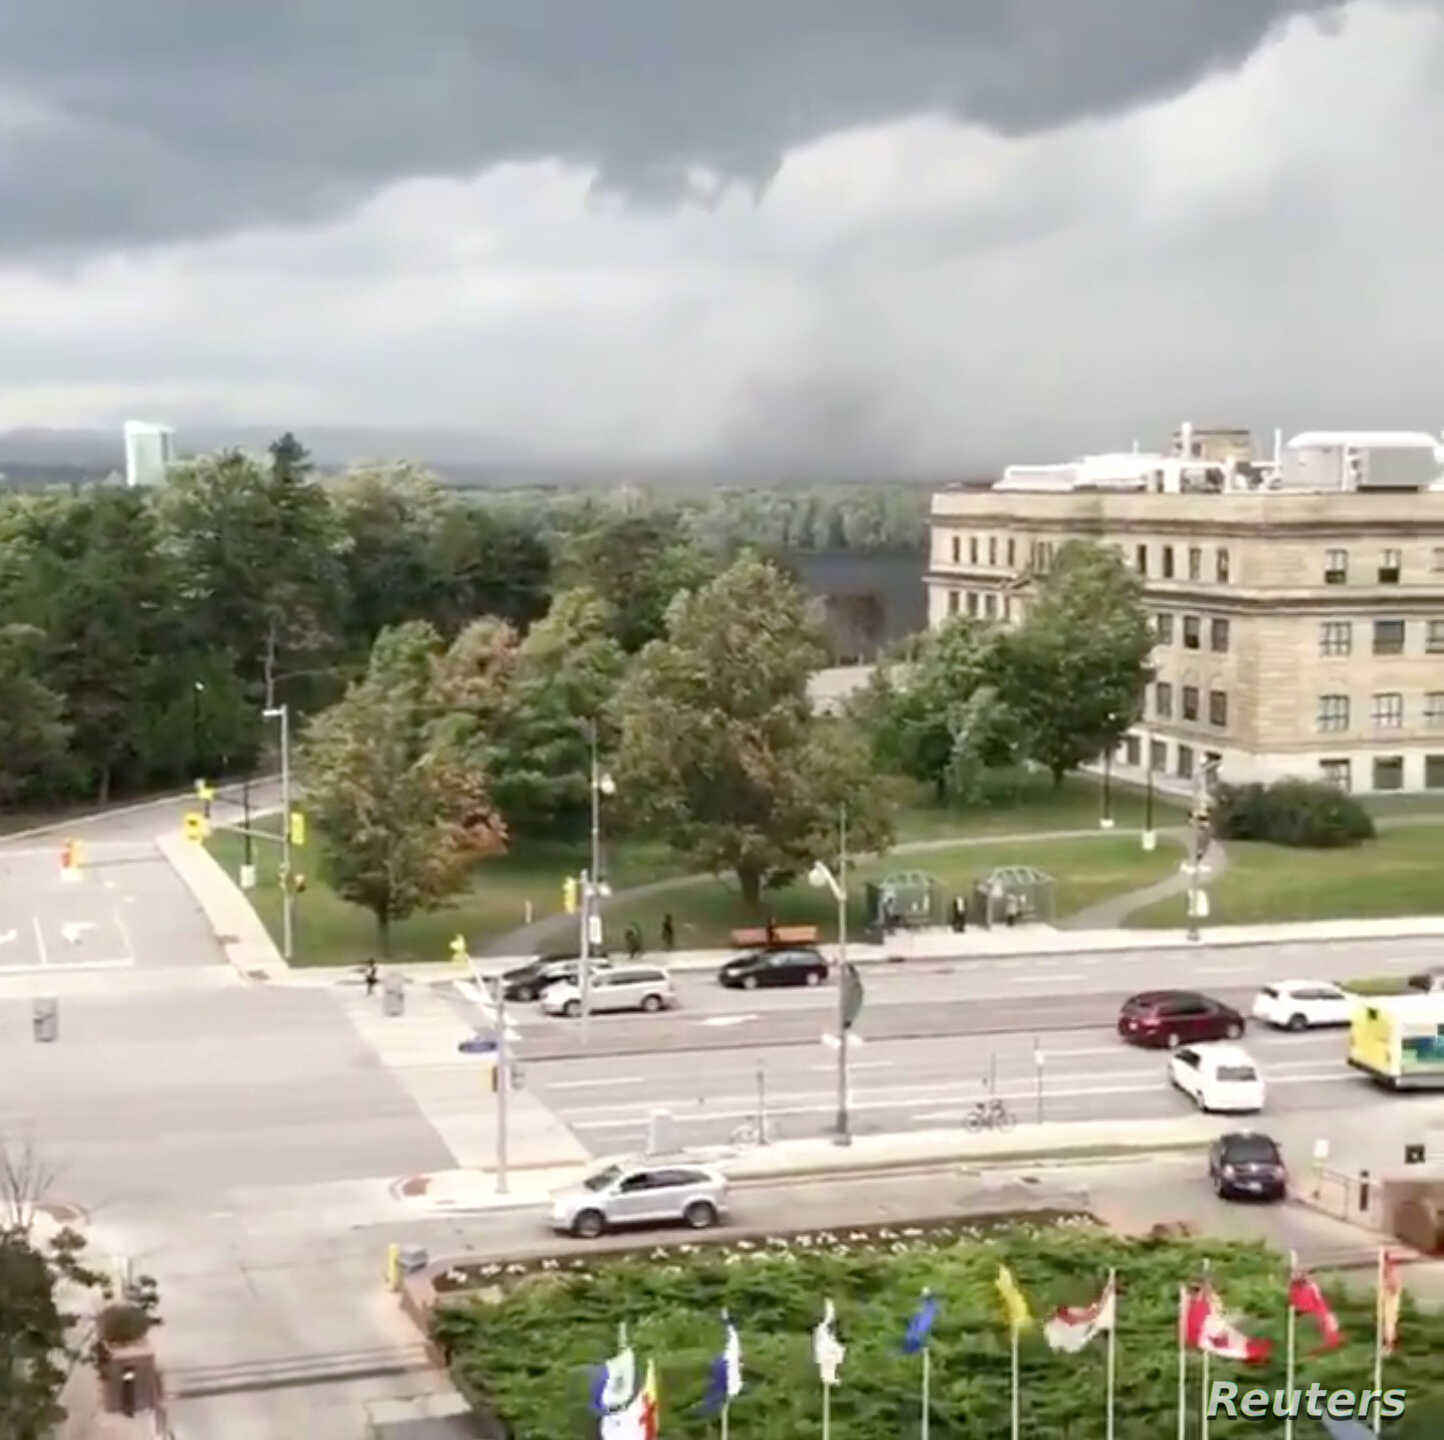 A tornado in Gatineau, Quebec, after a storm, is seen from Ottawa, Ontario, Sept. 21, 2018, in this still image taken from a social media video.